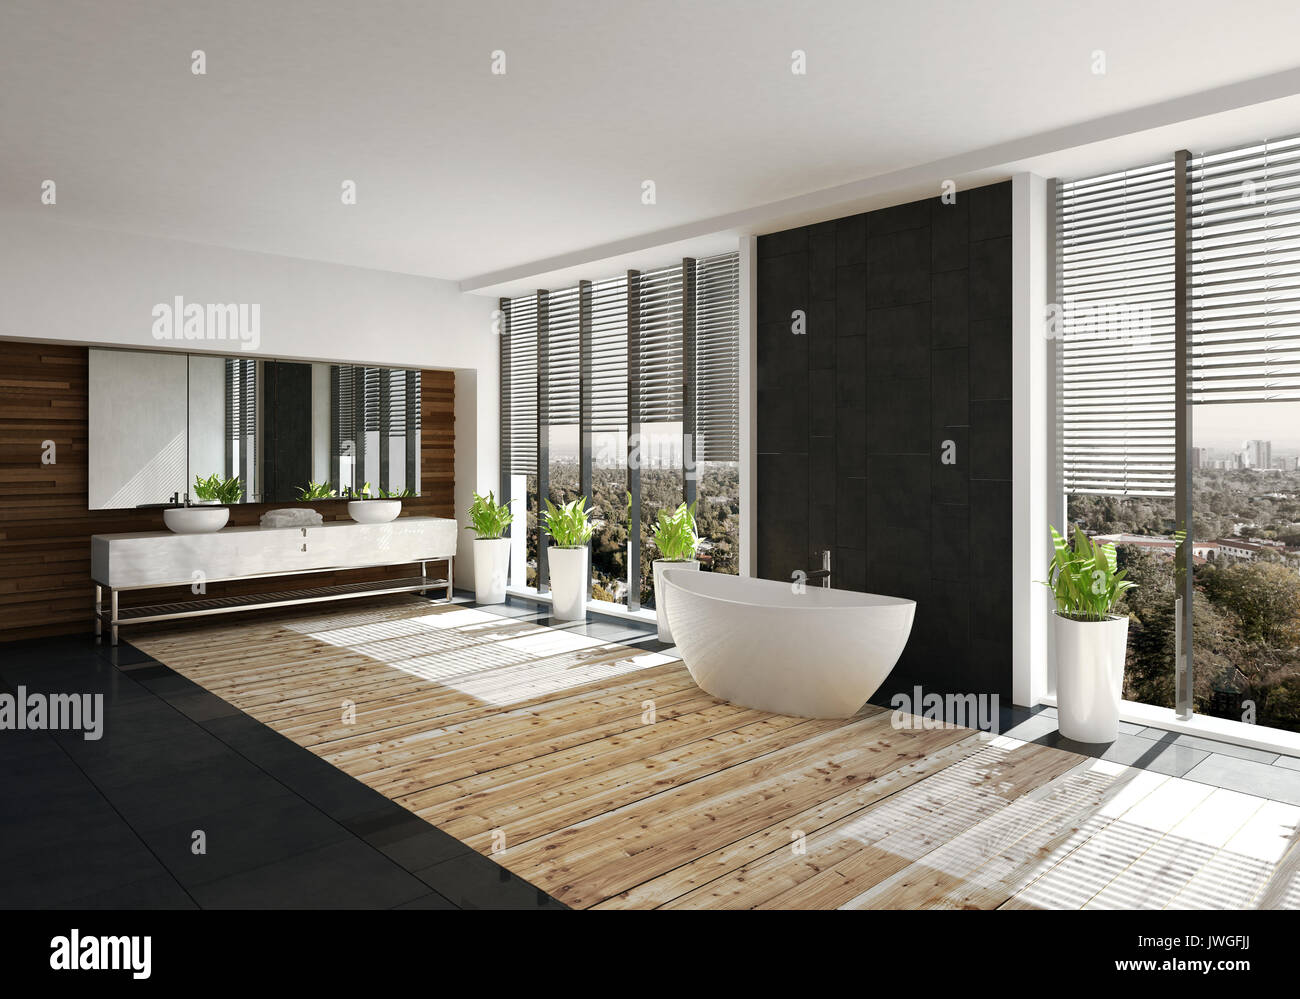 large modern bathroom. Modern Bathroom With Feature Black Wall And Boat Shaped Tub Flanked By Large View Windows Blinds. Double Vanity Over A Light Wood Floor. 3d Rende N